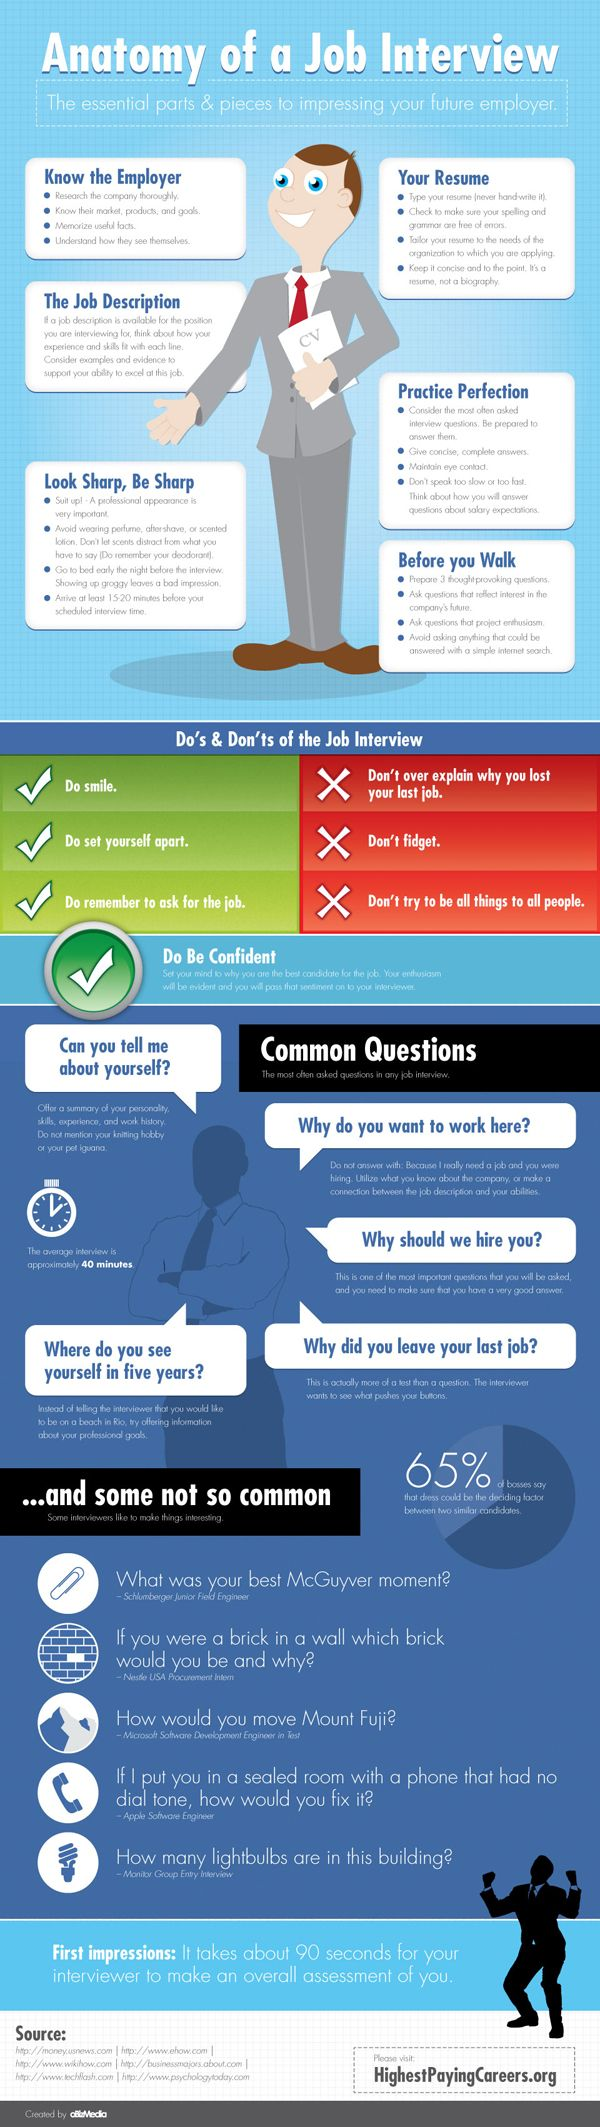 Anatomy of a Job Interview | Infographic |